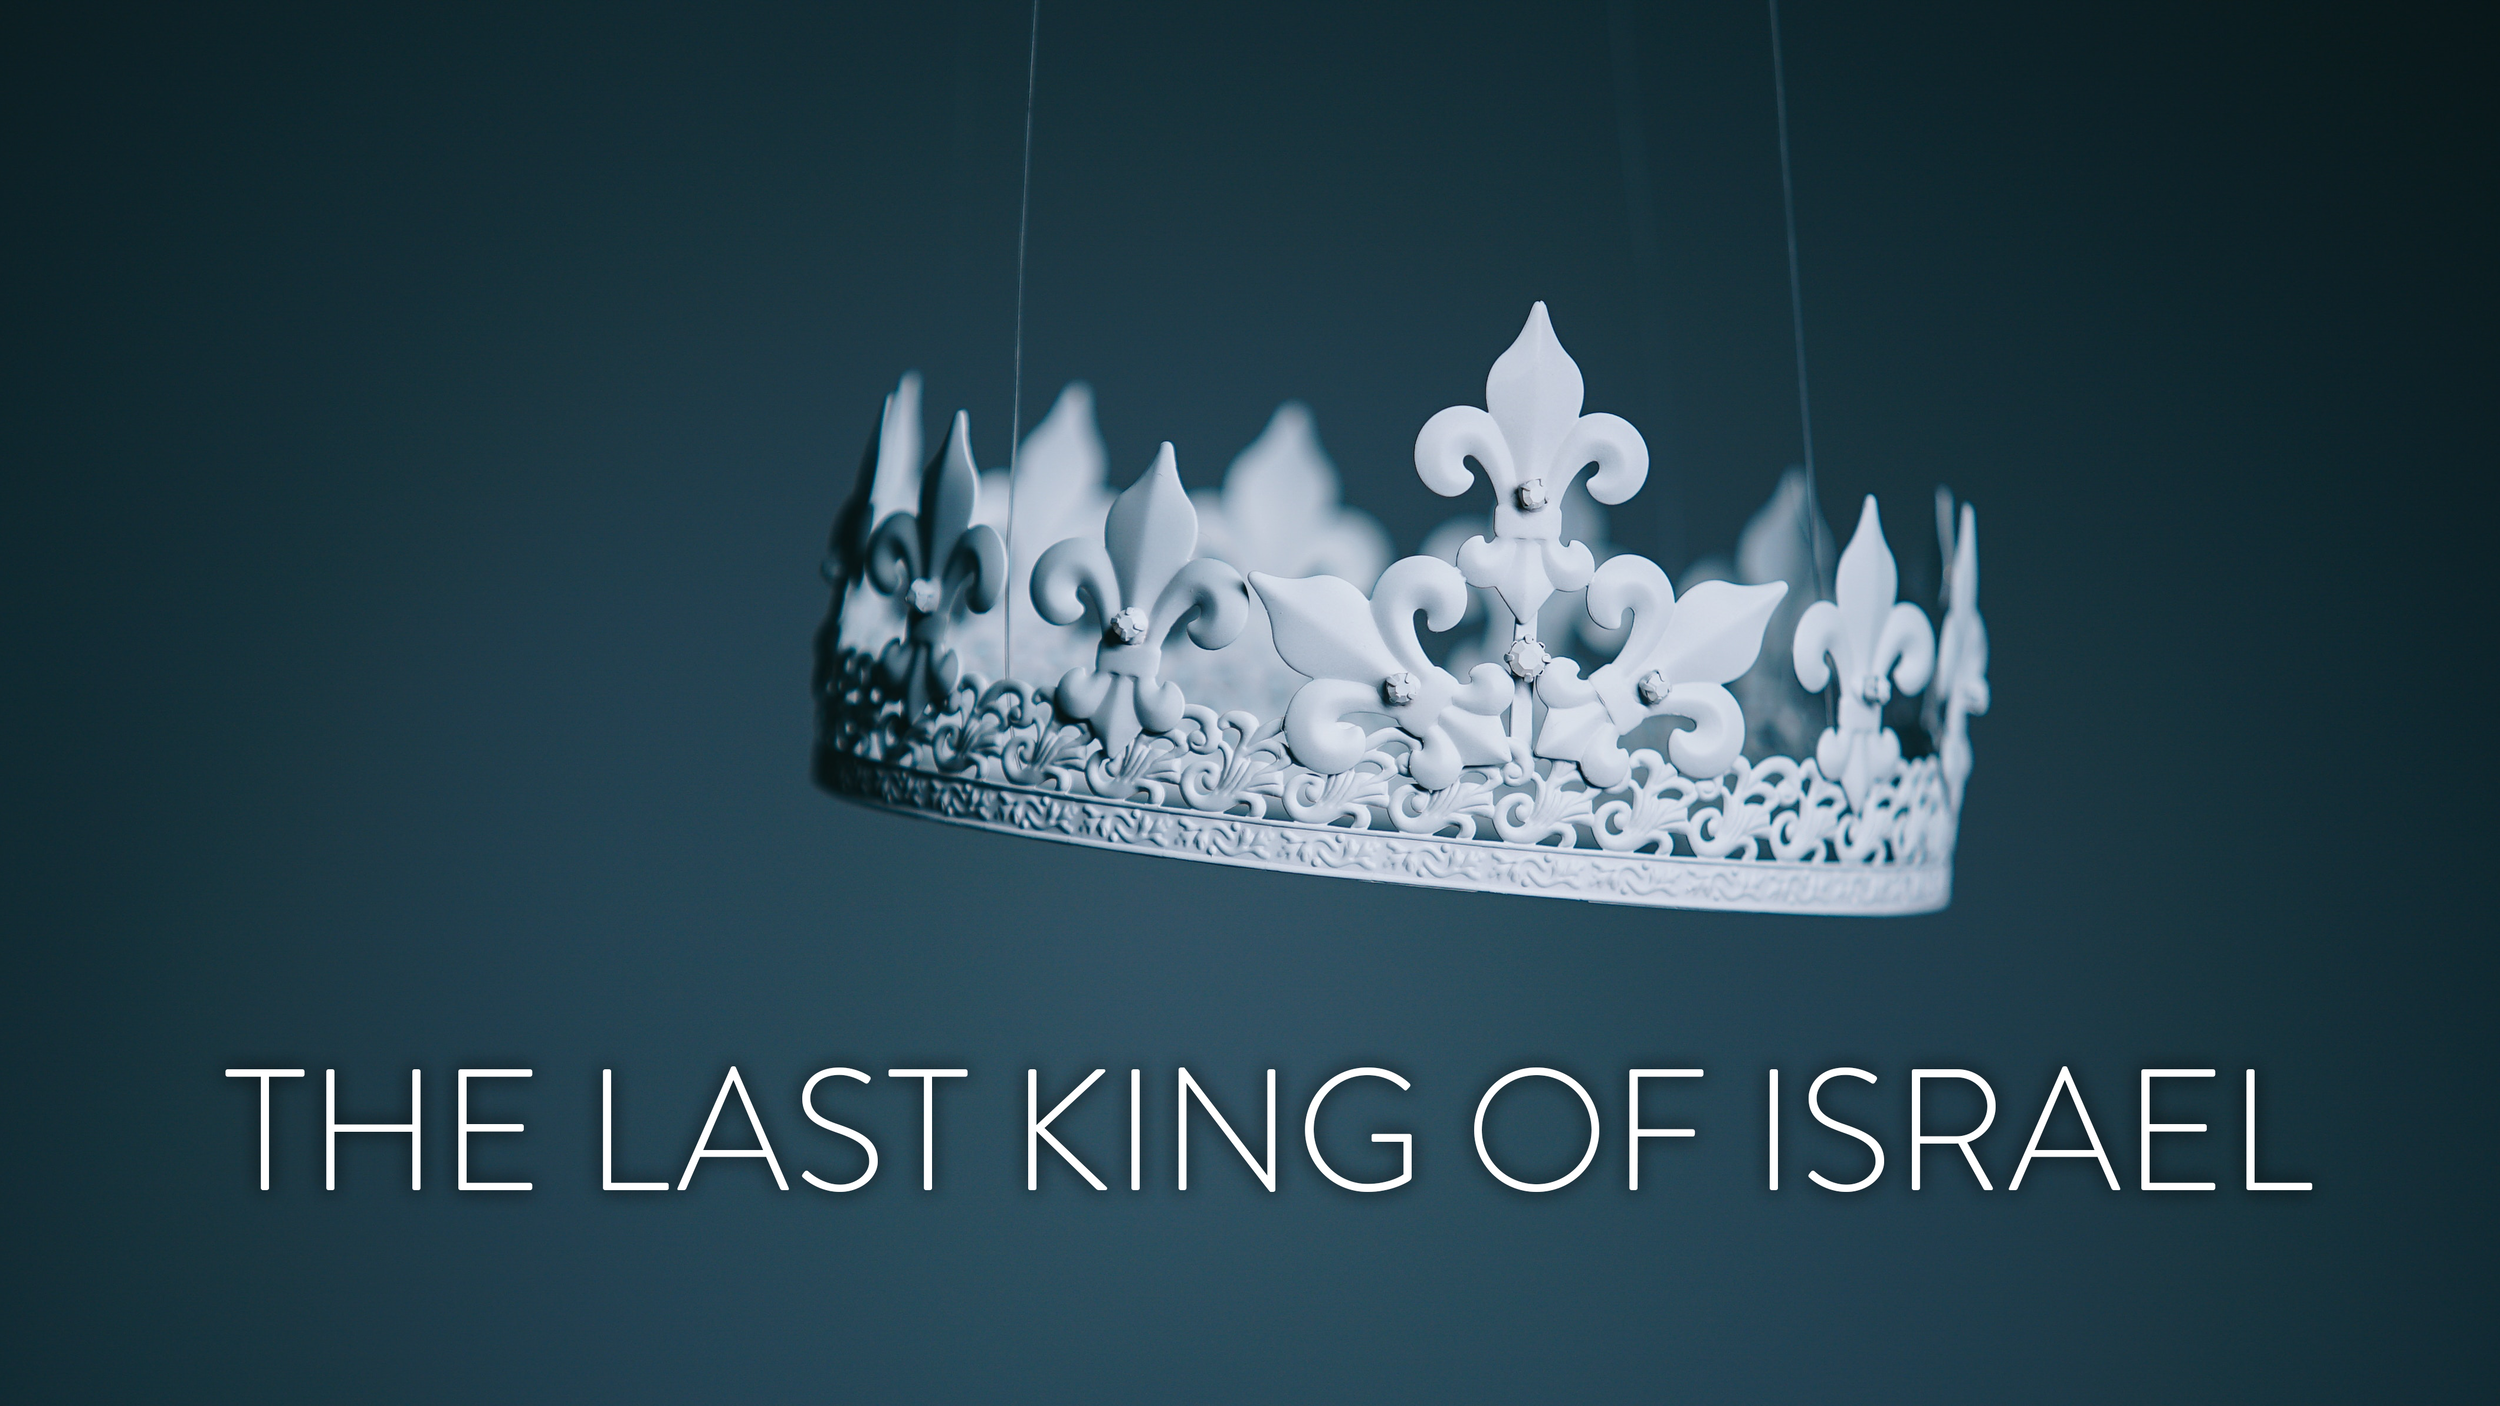 The Last King of Israel - 1. The Rise of Solomon2. Experiencing the Presence of God